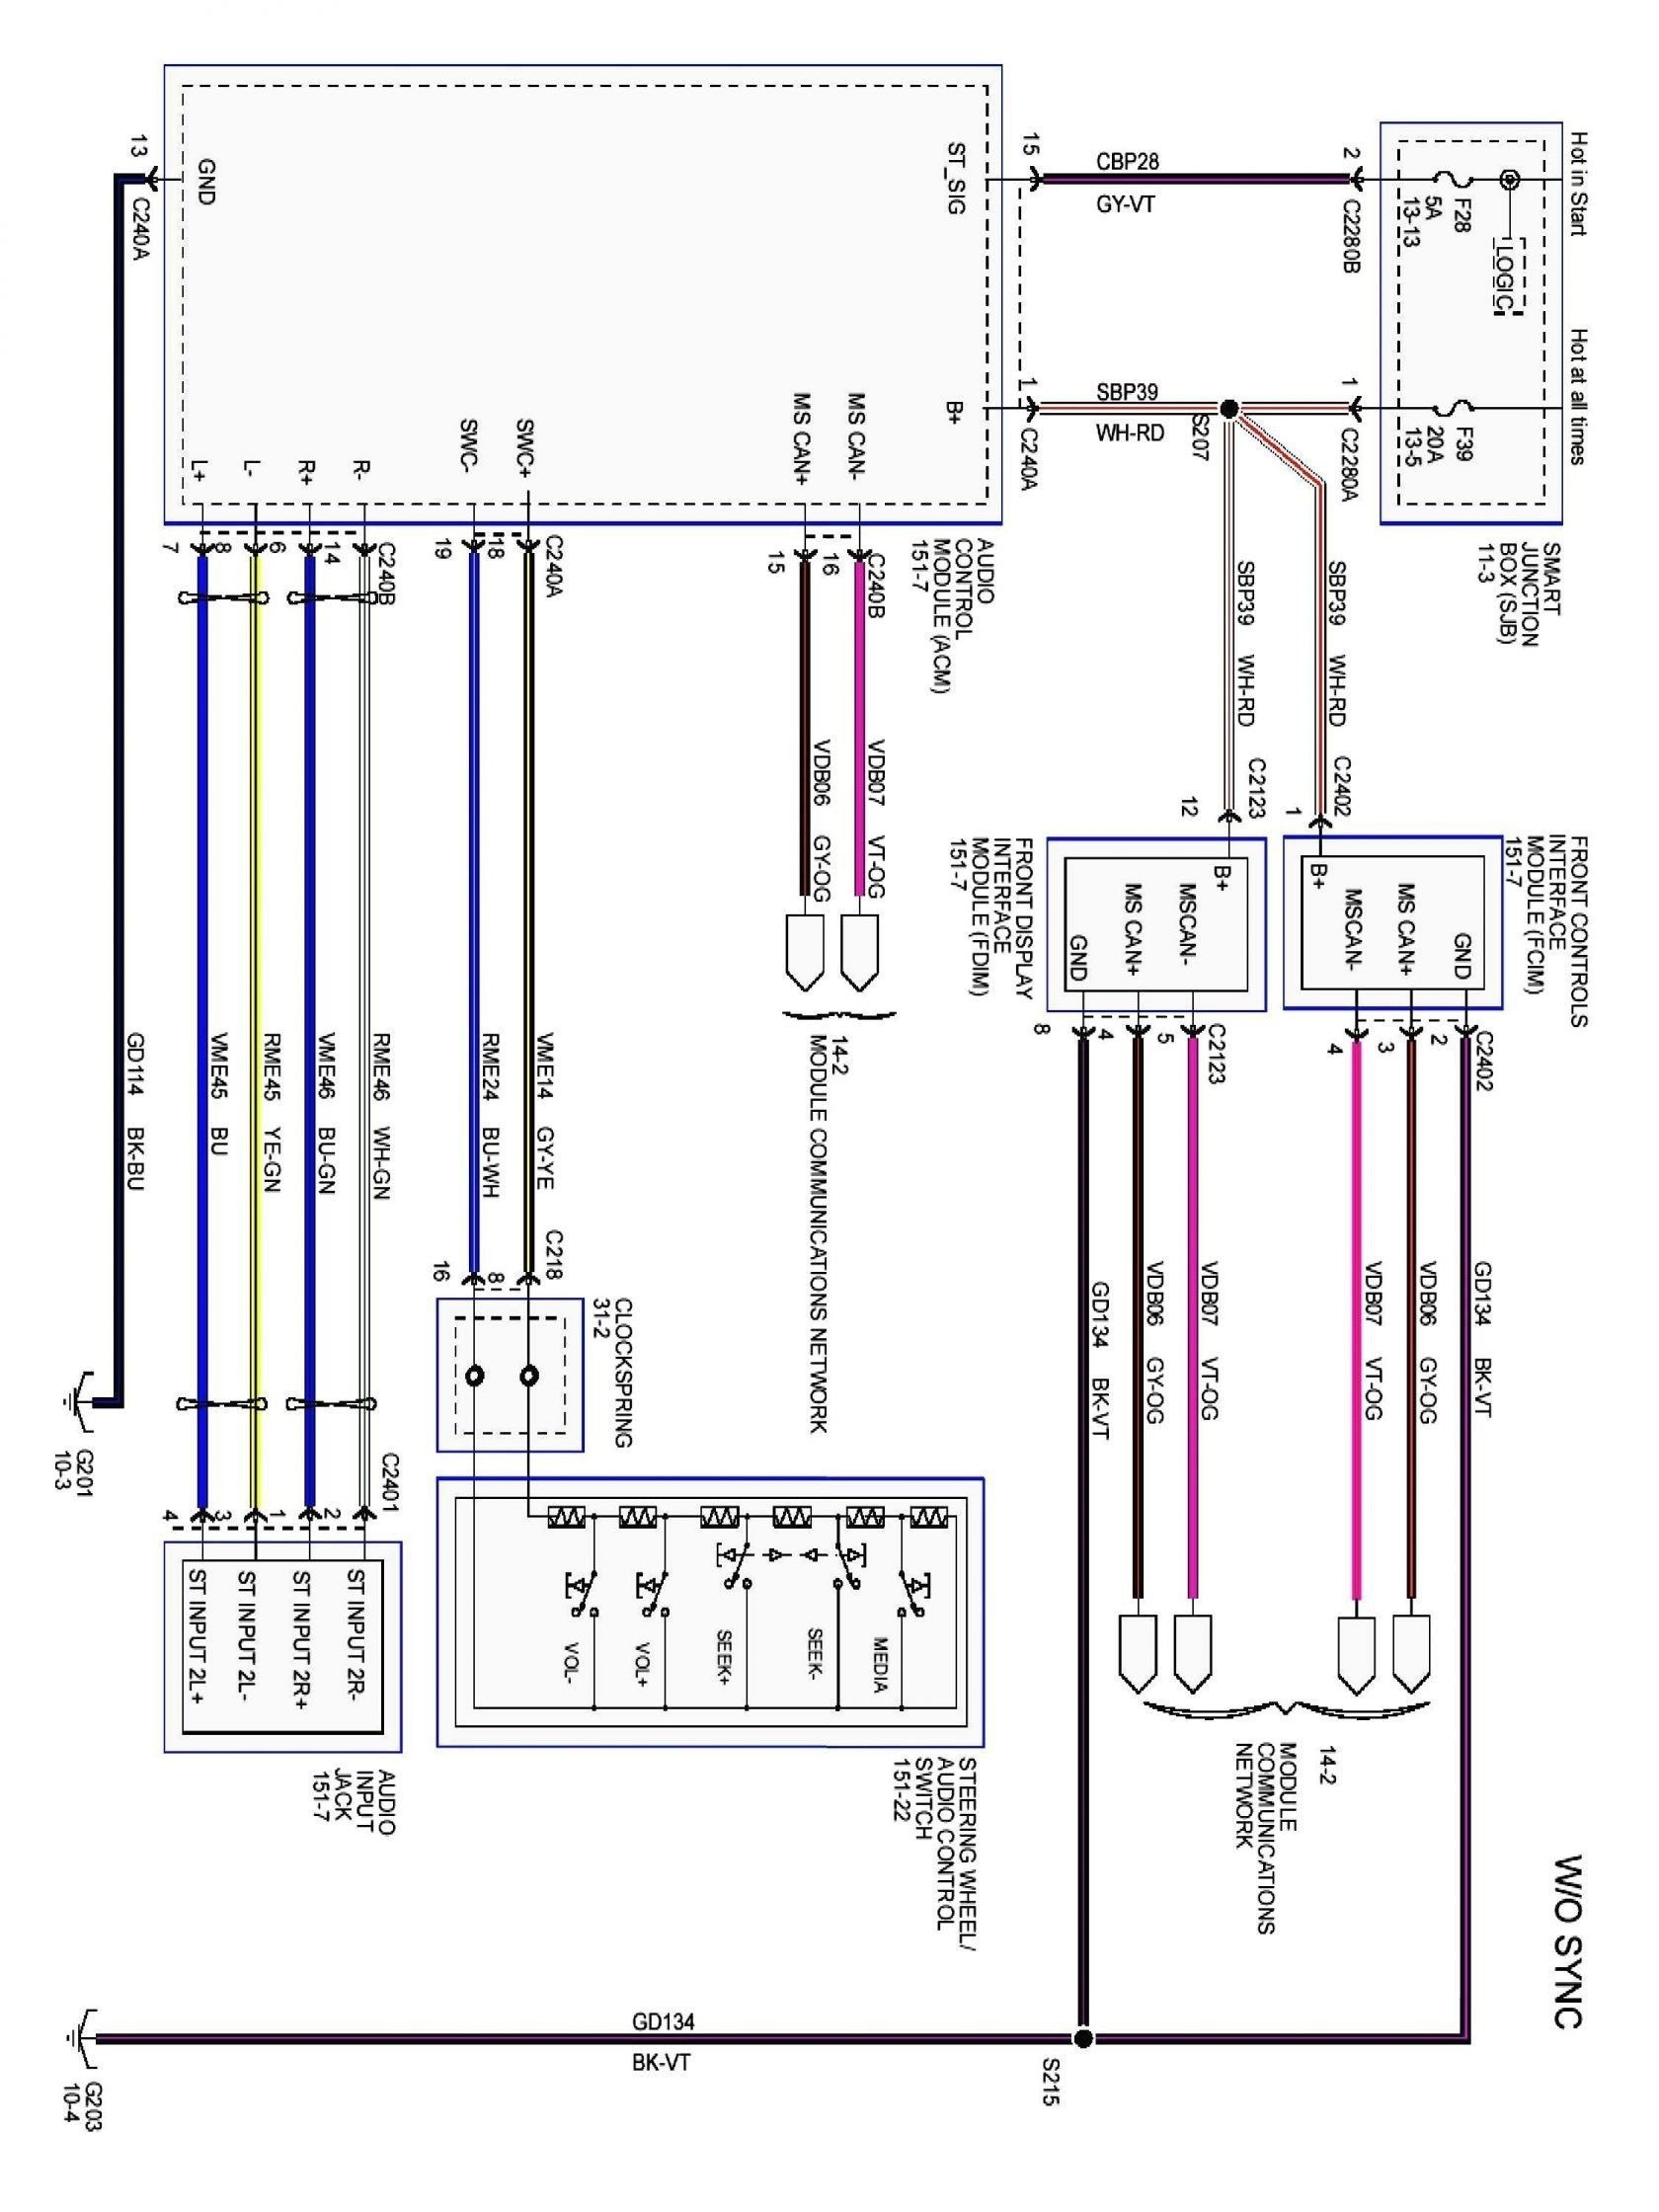 Amp Research Power Step Wiring Diagram Wiring Diagram Image Amp Research Power Step Wiring Diagram Amp House Wiring Truck Stereo Electrical Wiring Diagram